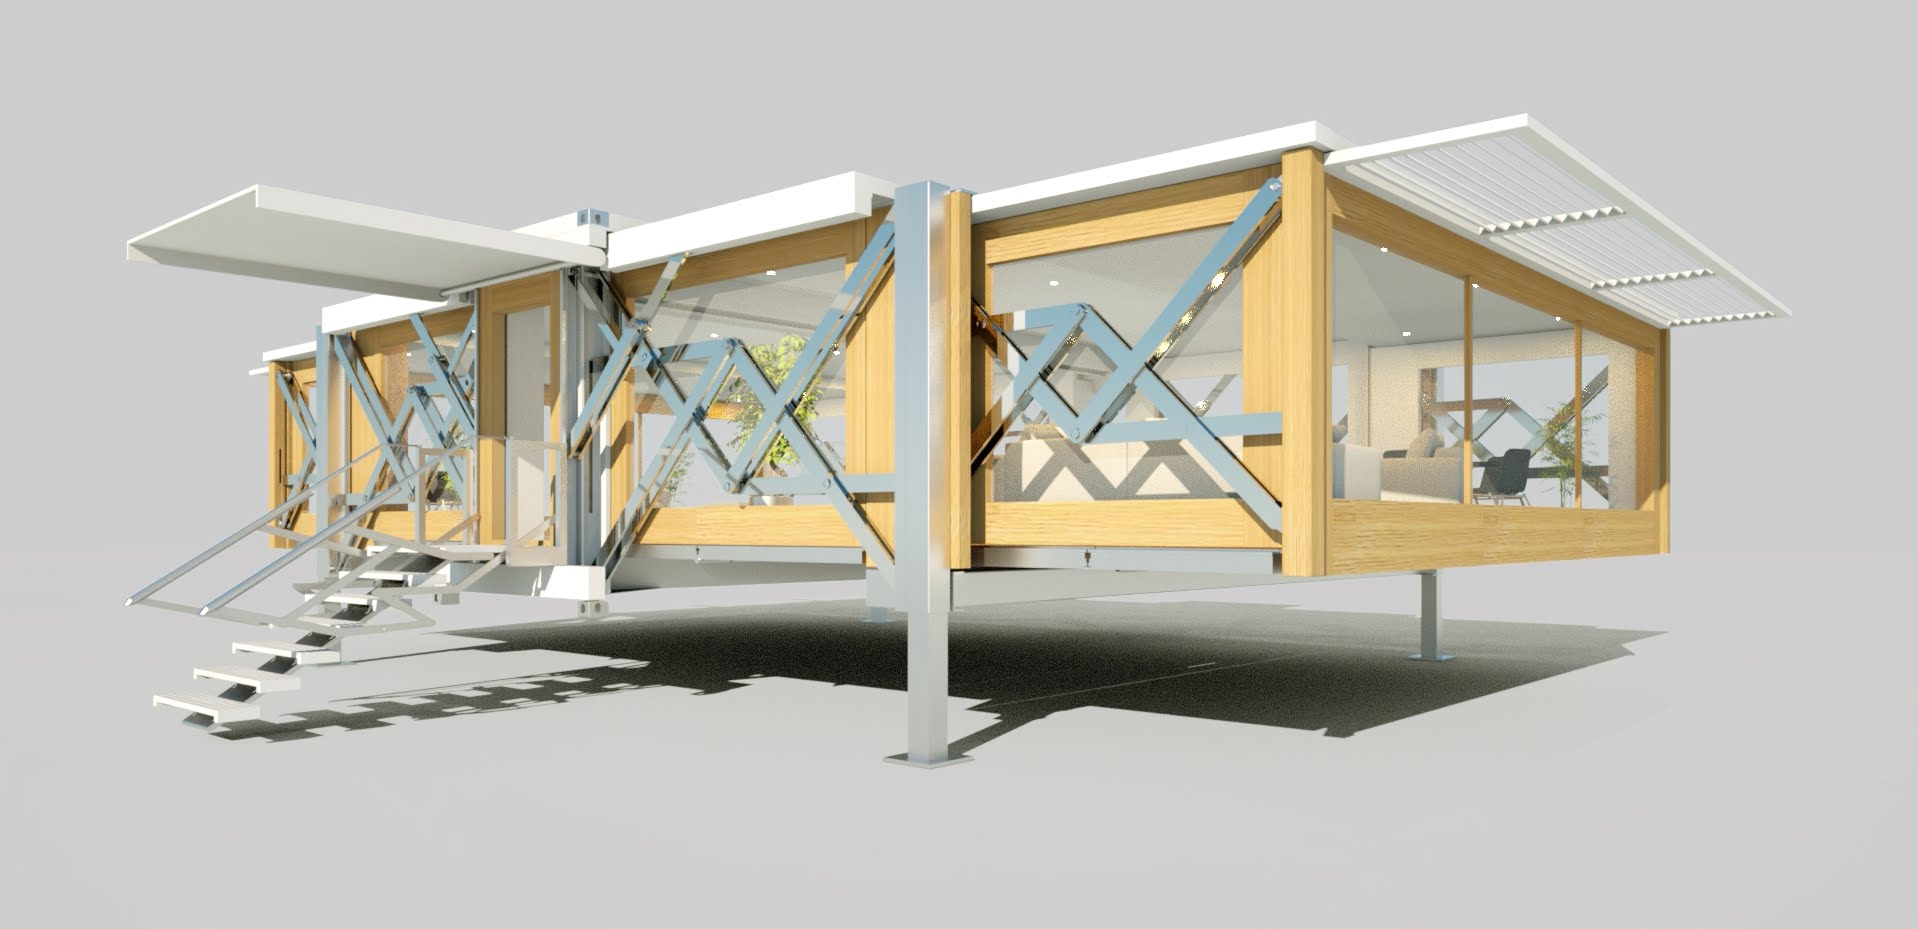 Floor Plans For Trailer Homes Ten Fold And The Mobile House Of The Future Urbanizehub